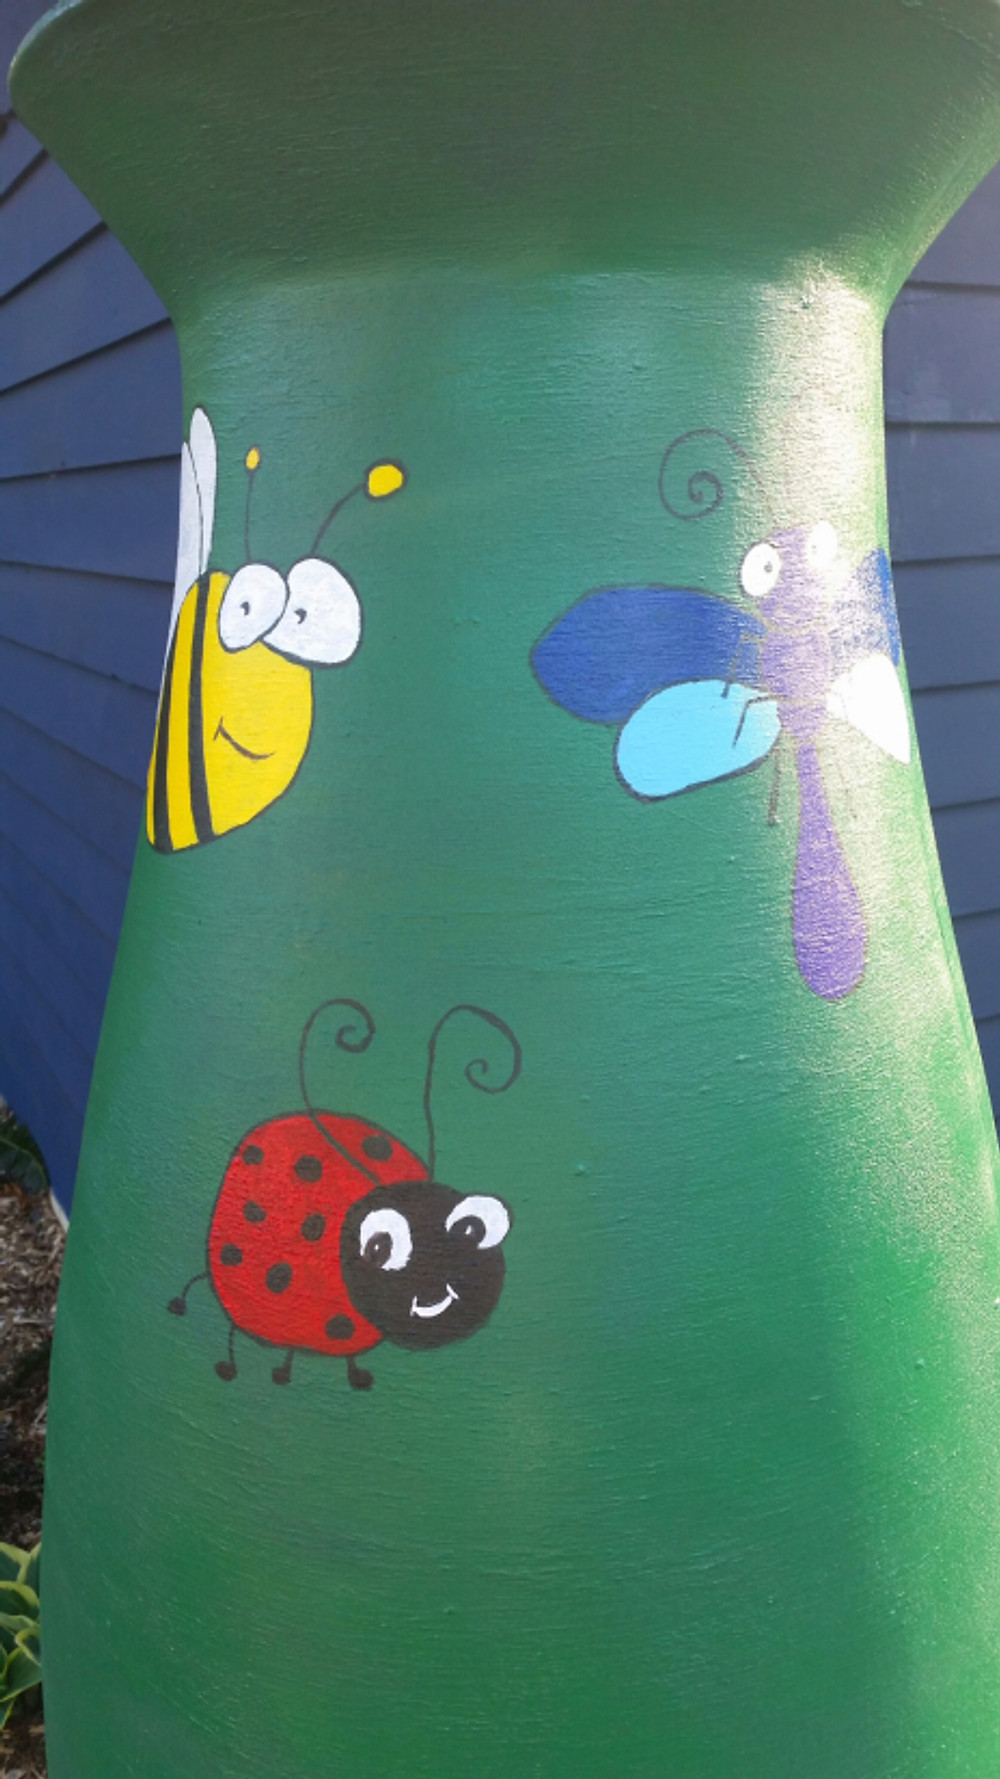 """Picked up some paint at Freddy's and started decorating the new rain barrel! Painted it green and we decided that """"good bugs"""" would be our theme (since the other ones have clouds and flowers). Found these ideas online and drew them freehand and then painted. Pretty cute eh?!"""